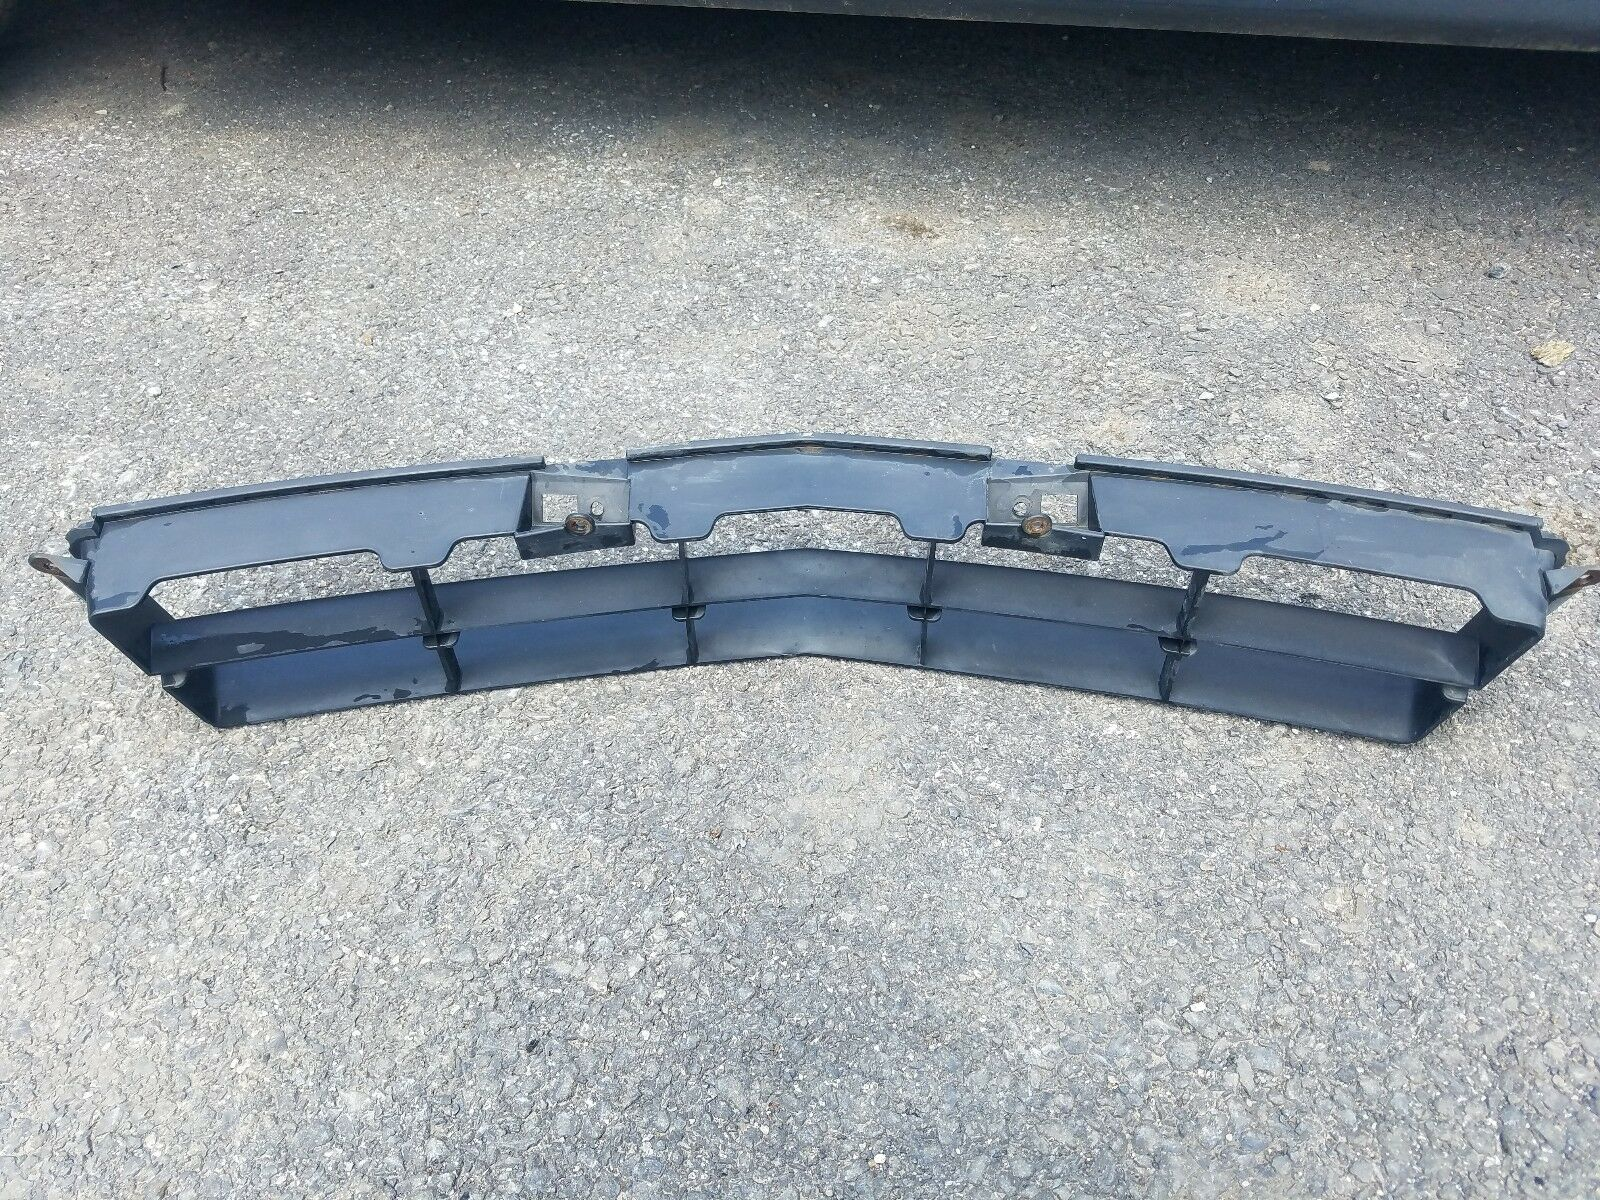 Used Acura Grilles For Sale - 2006 acura rl grill